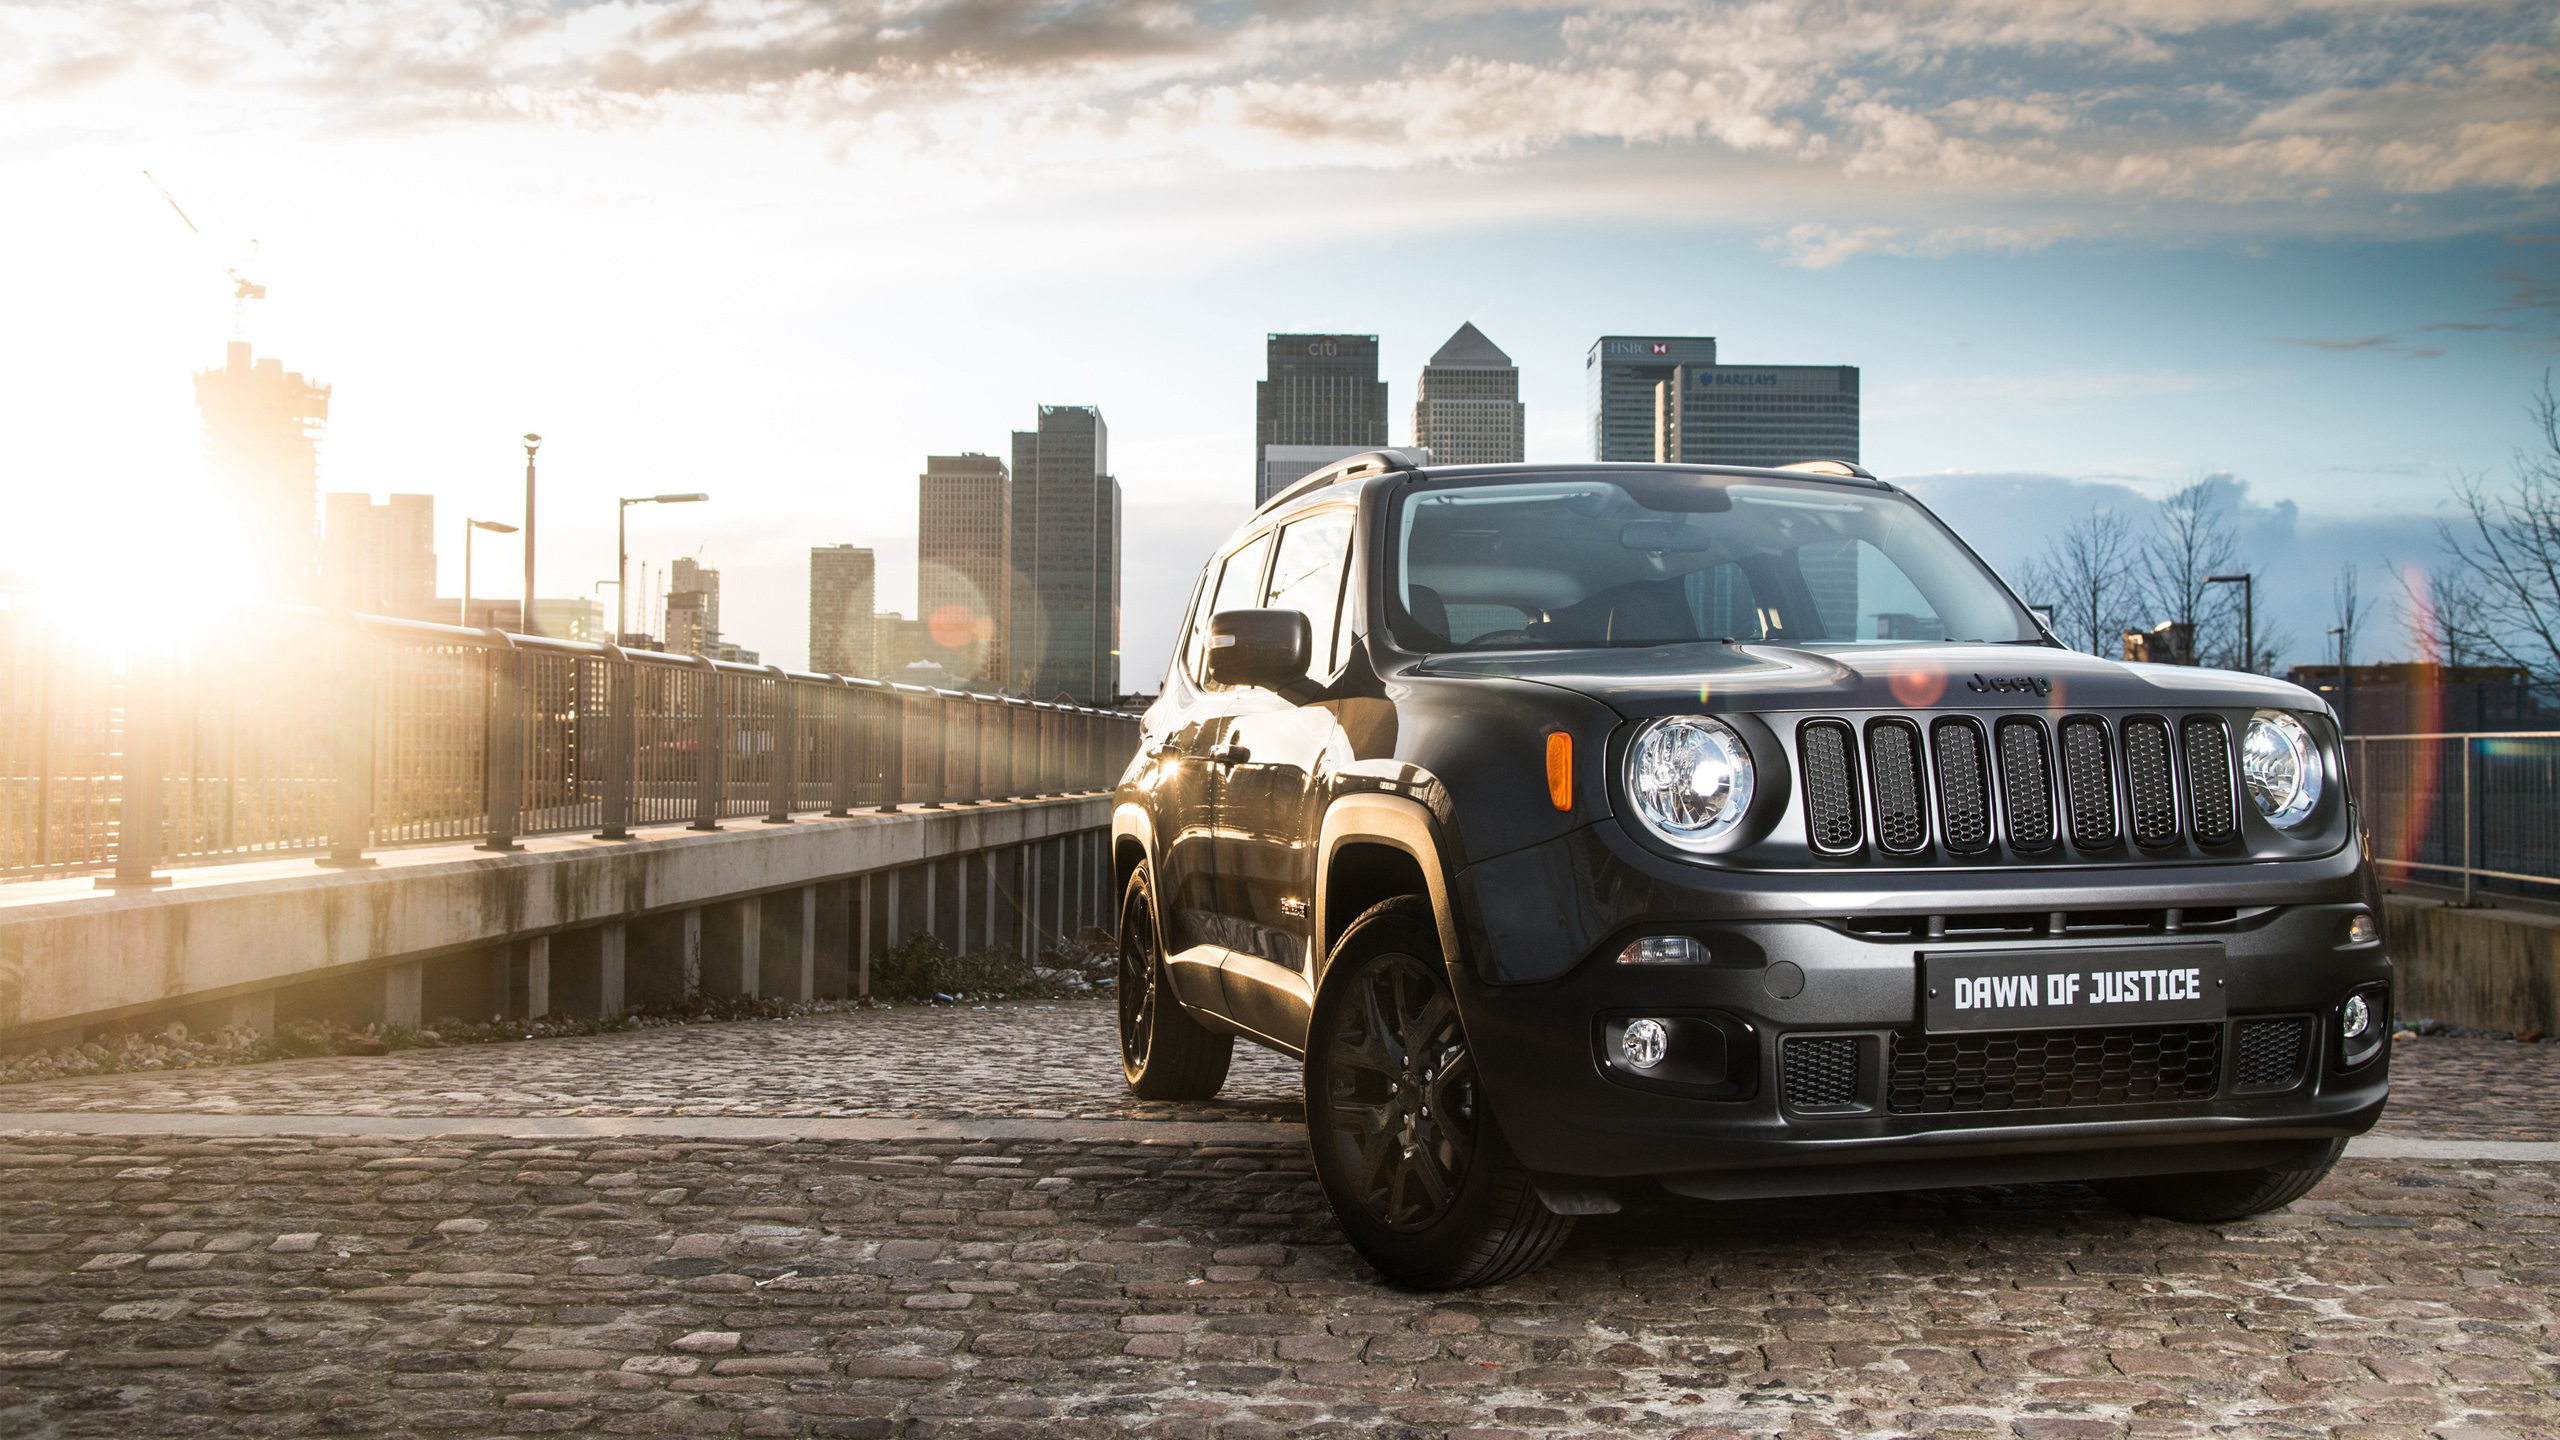 jeep renegade dawn of justice edition wallpaper | hd car wallpapers